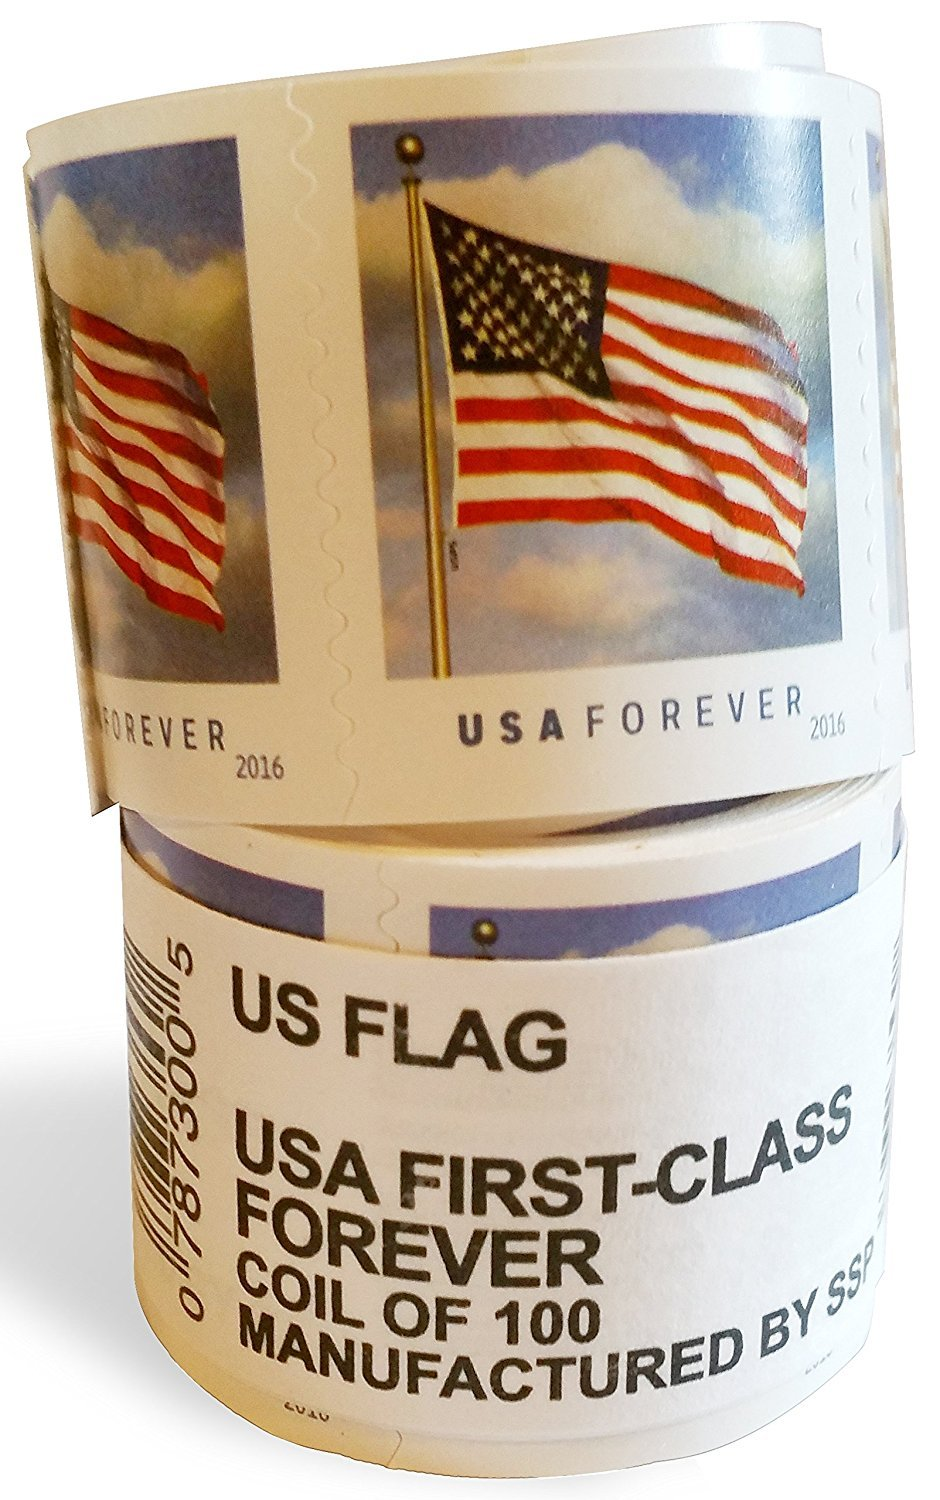 USPS U.S. Flag 2016 Forever Stamps, Roll of 100 Stamps